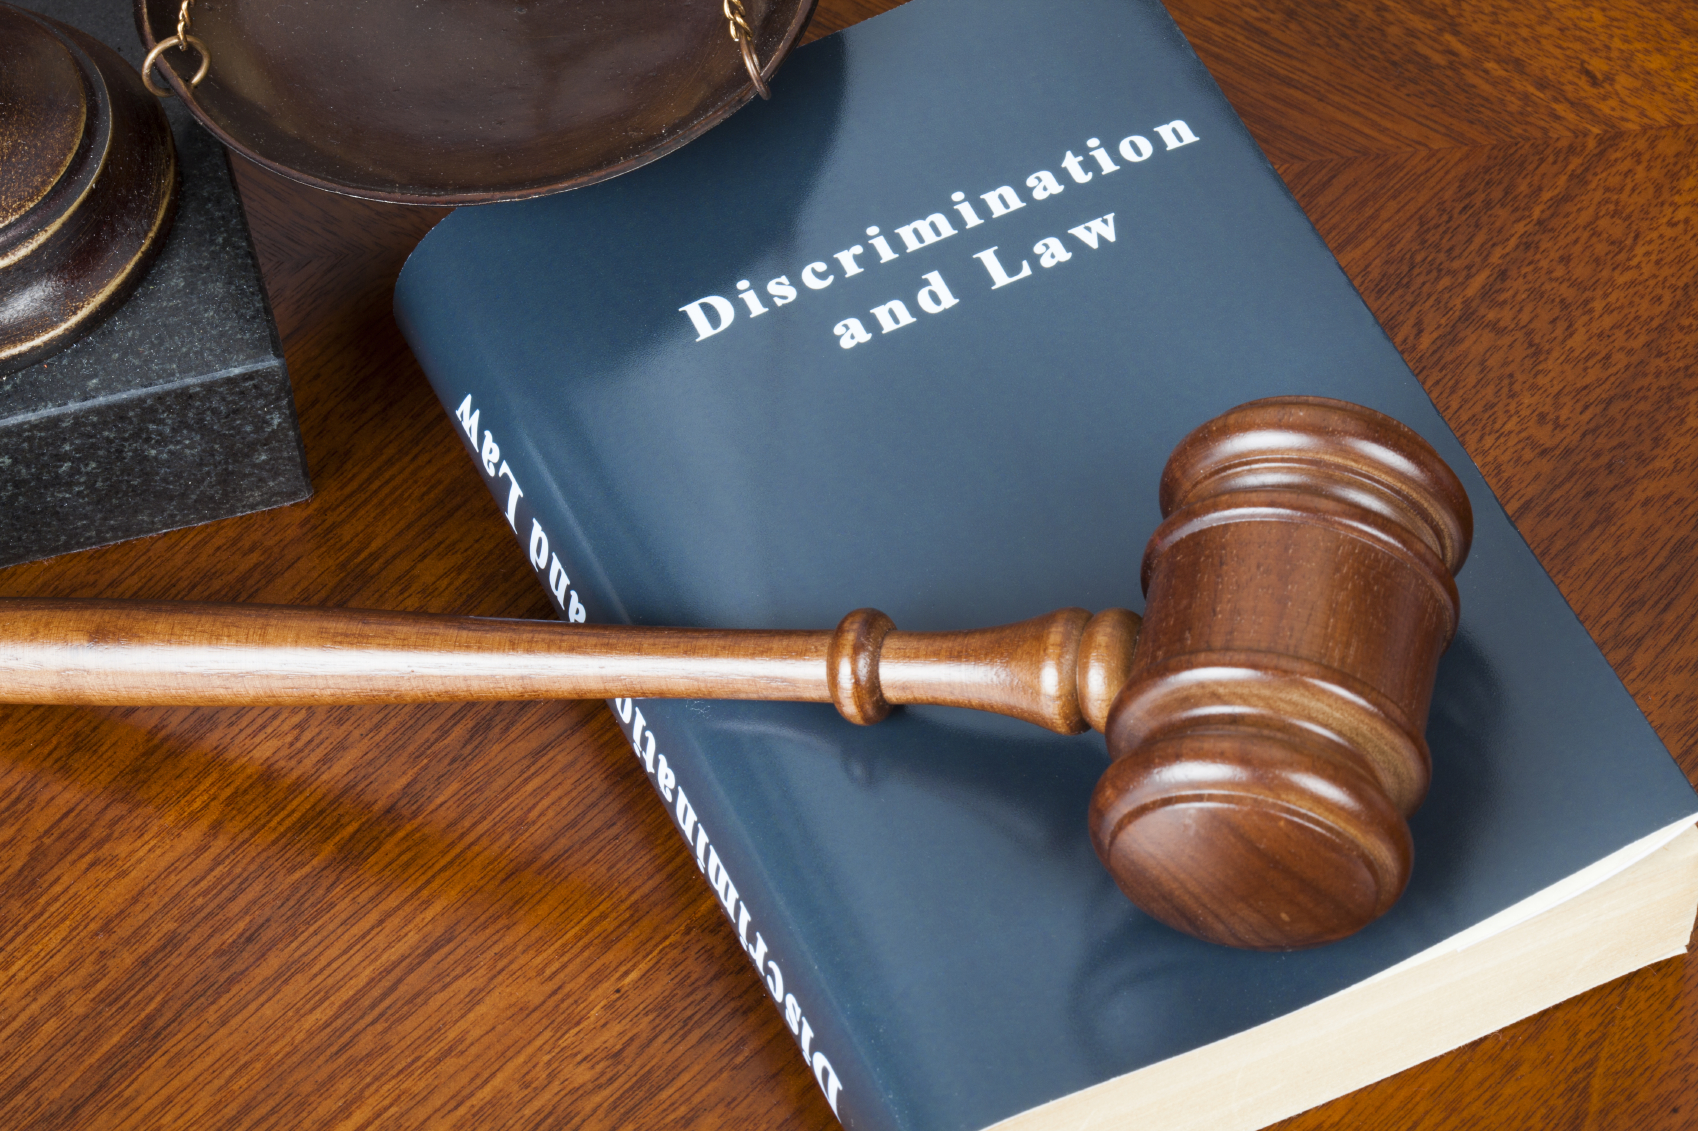 Discrimination and Law